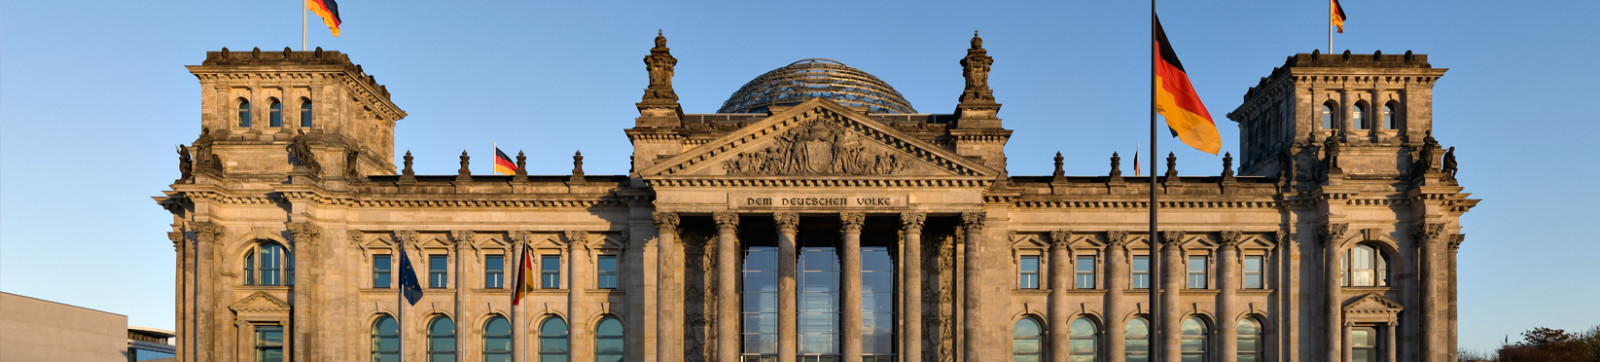 Germania berlin